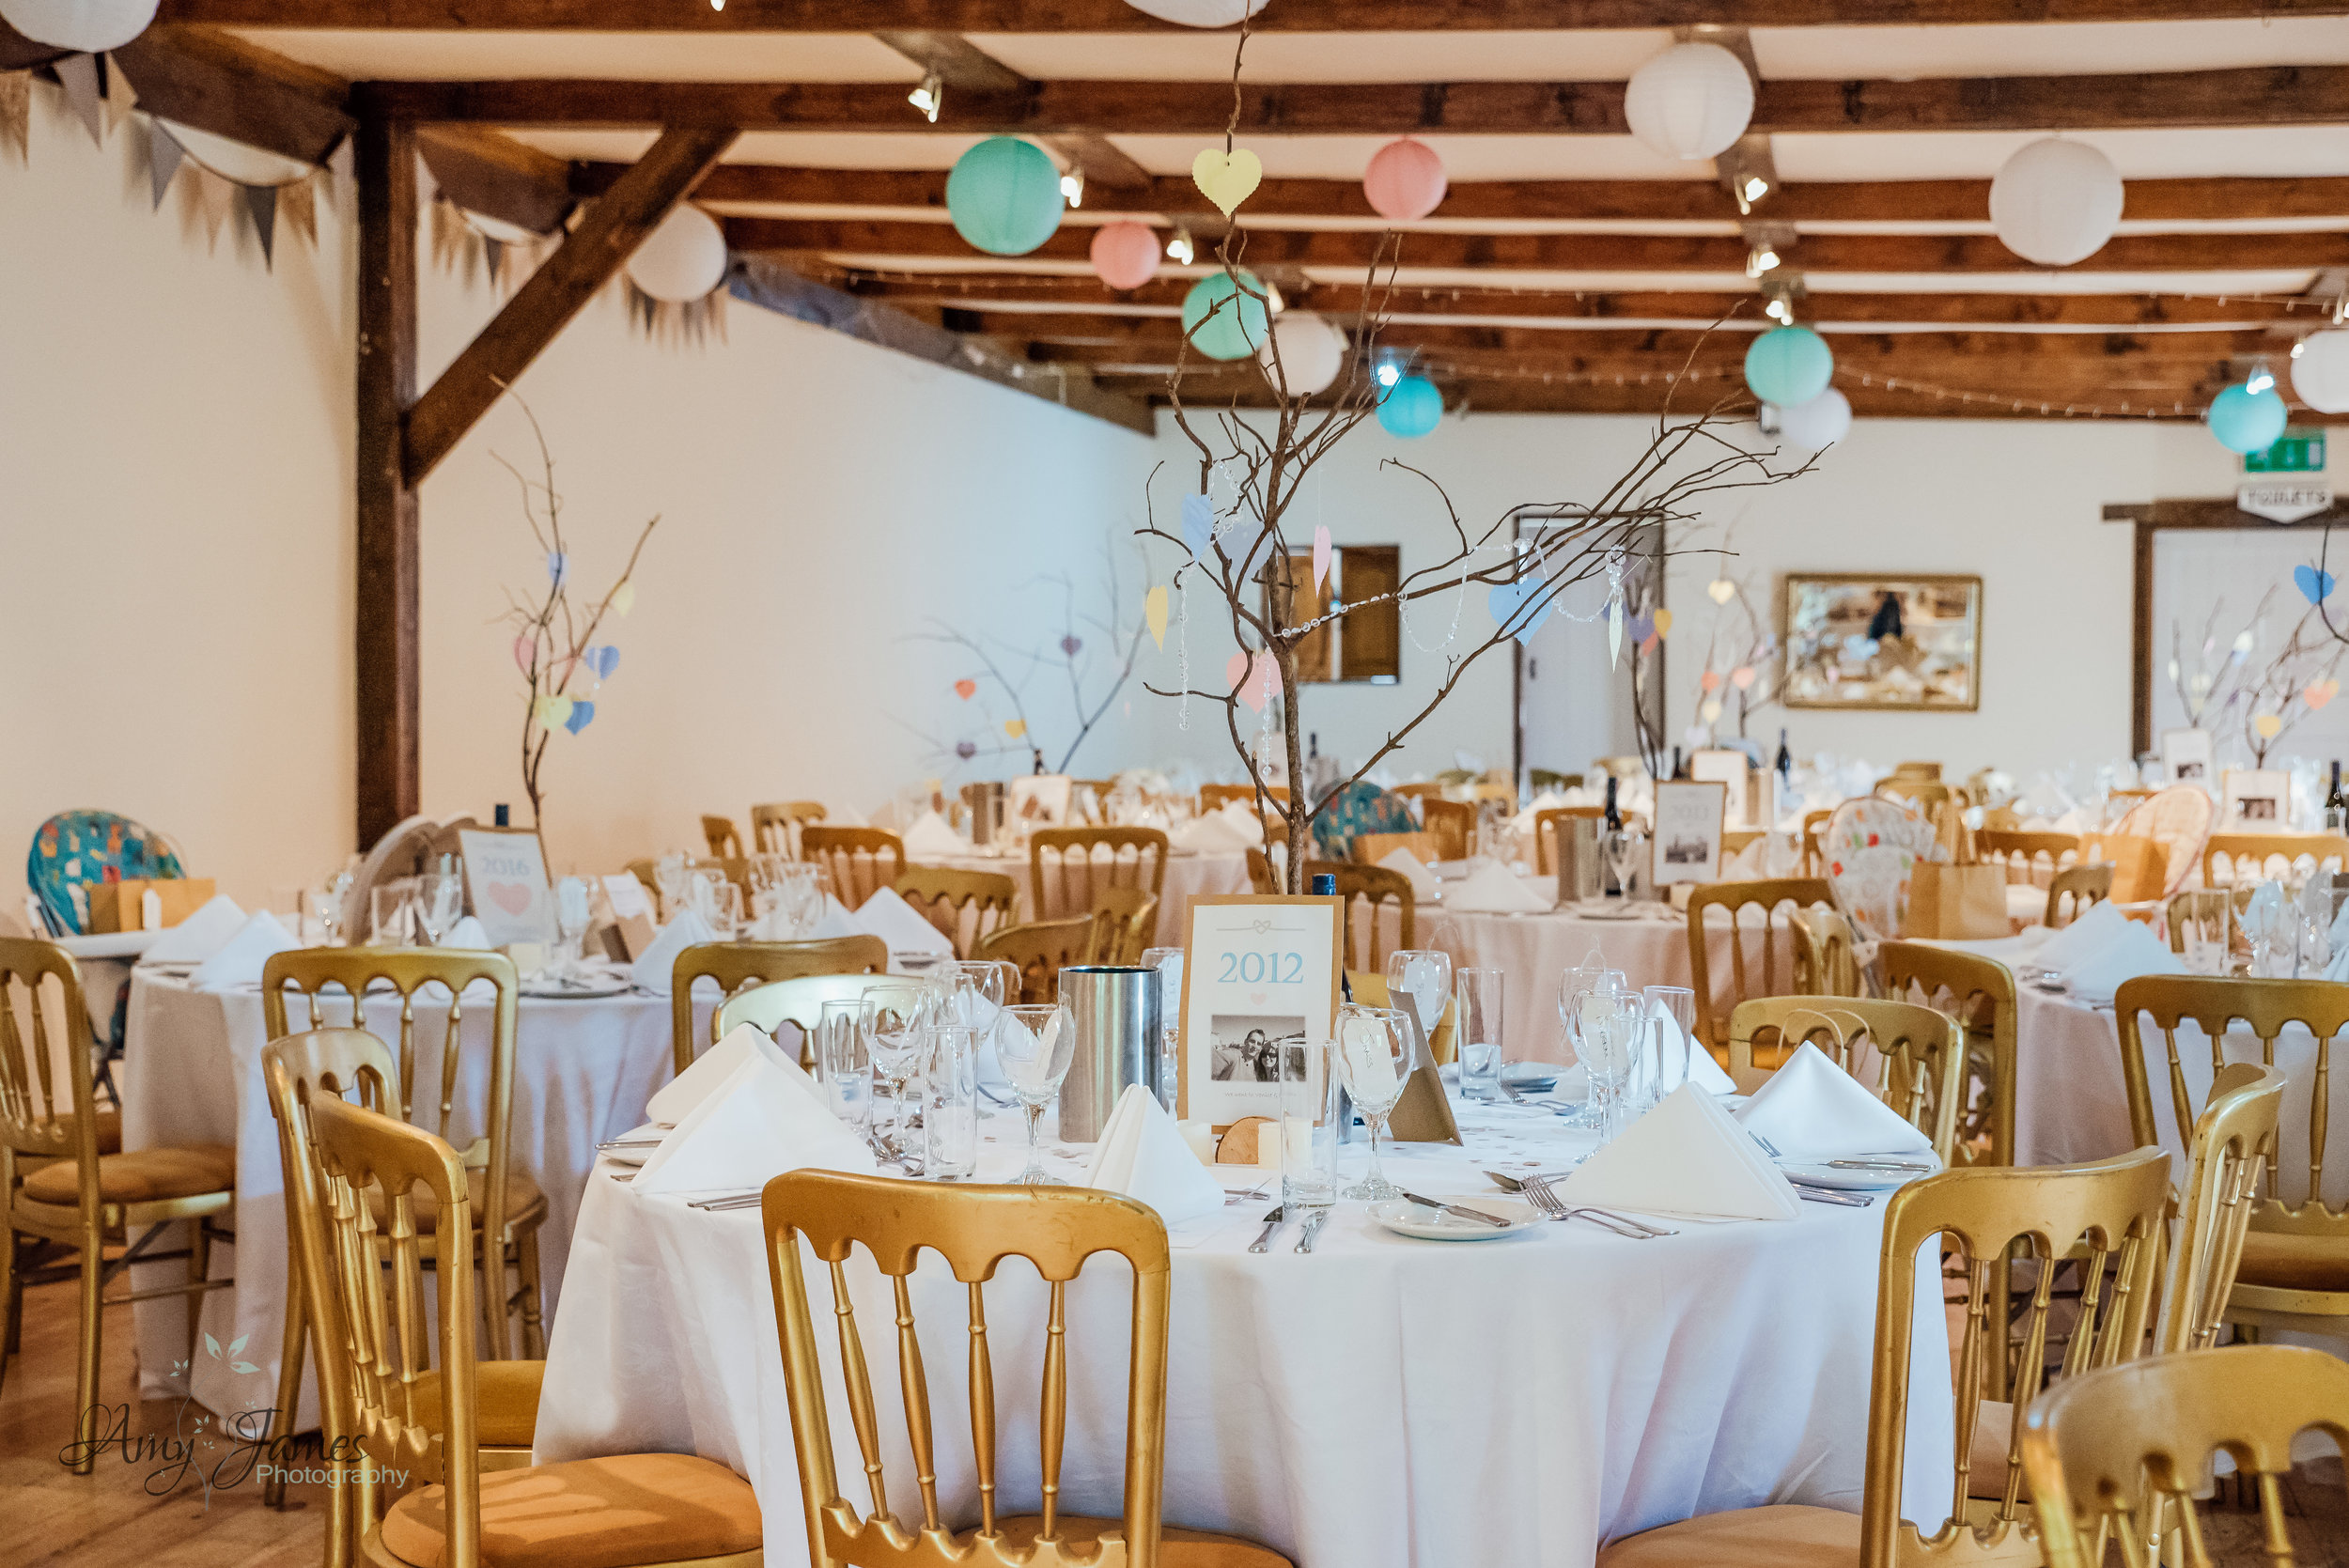 Barn wedding venue Hampshire Taplins Place by Amy James Photography Wedding photographer Hampshire - Documentary wedding photography